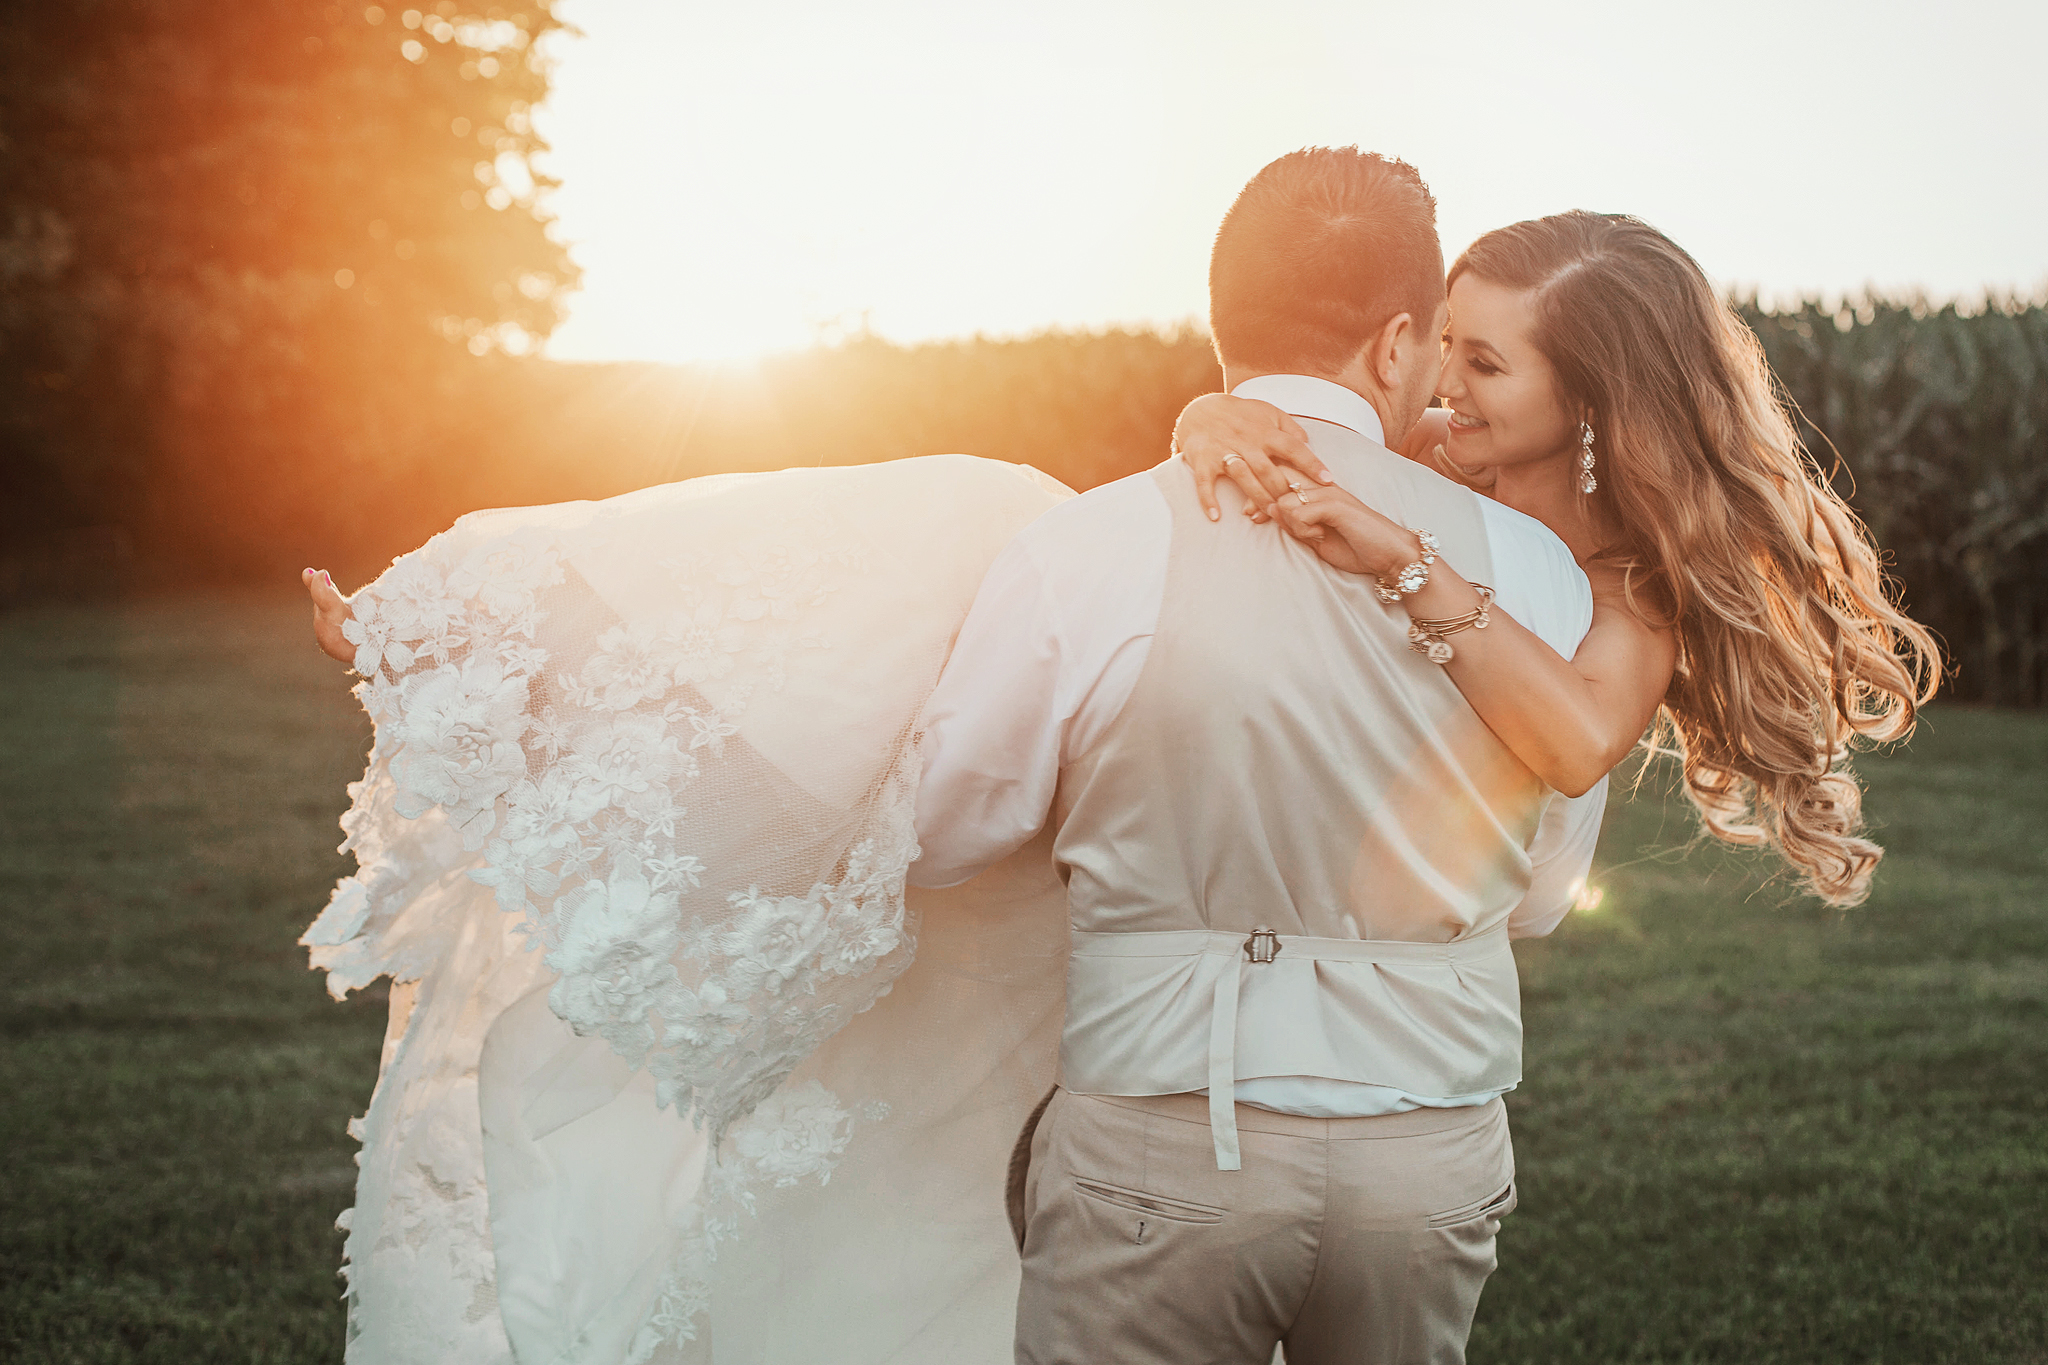 Cincinnati-Dayton-OH-Wedding-Photography-Family-Farm-Venue-Traveling-Photographer-150.jpg